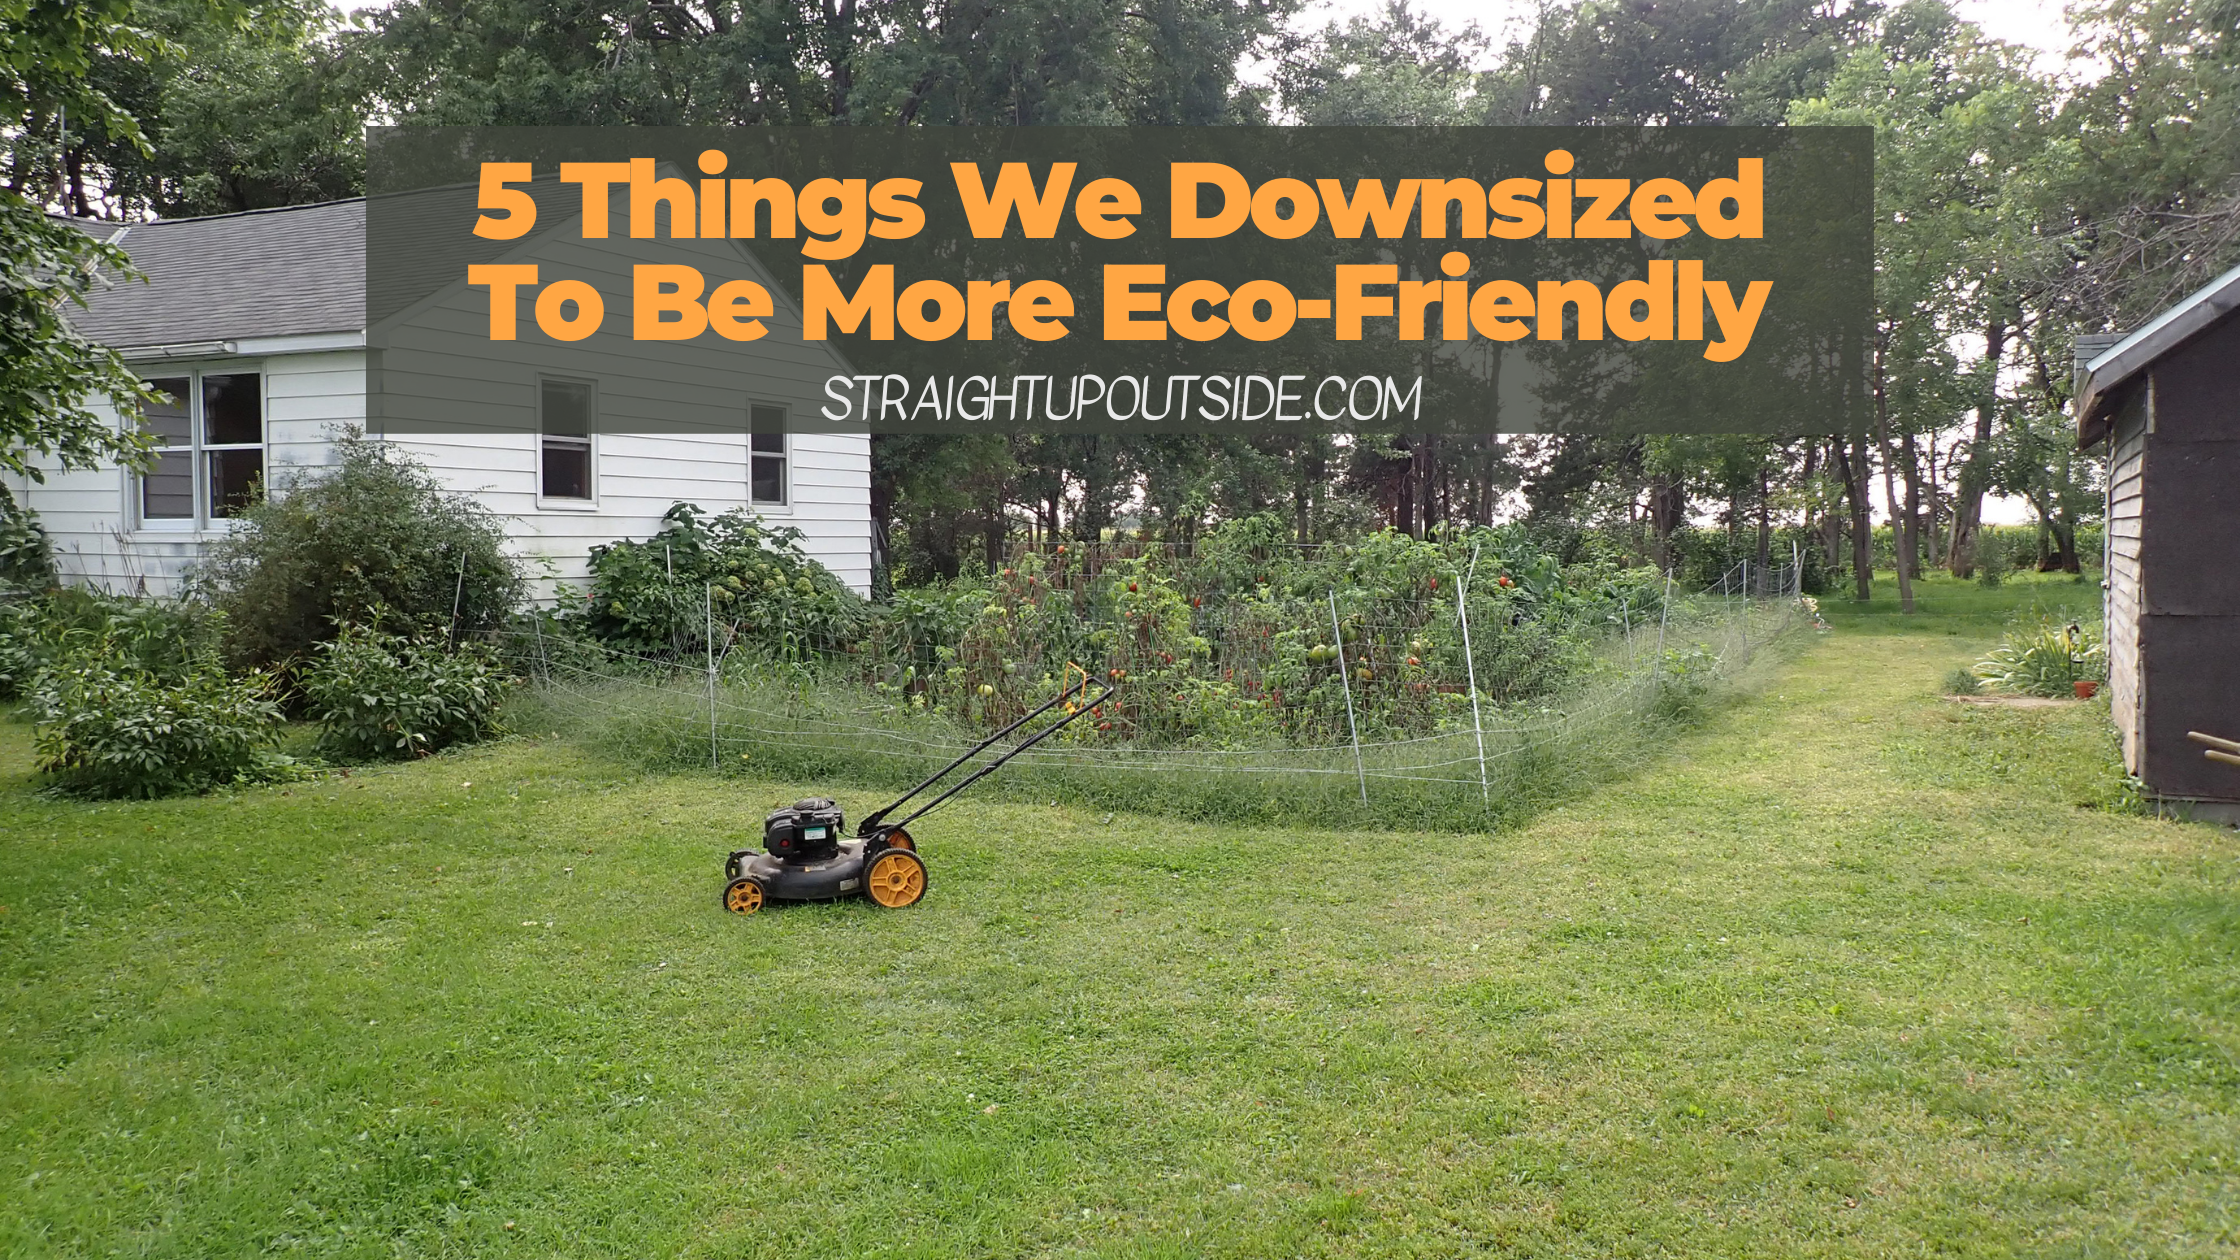 5 Things We Downsized To Be More Eco-Friendly